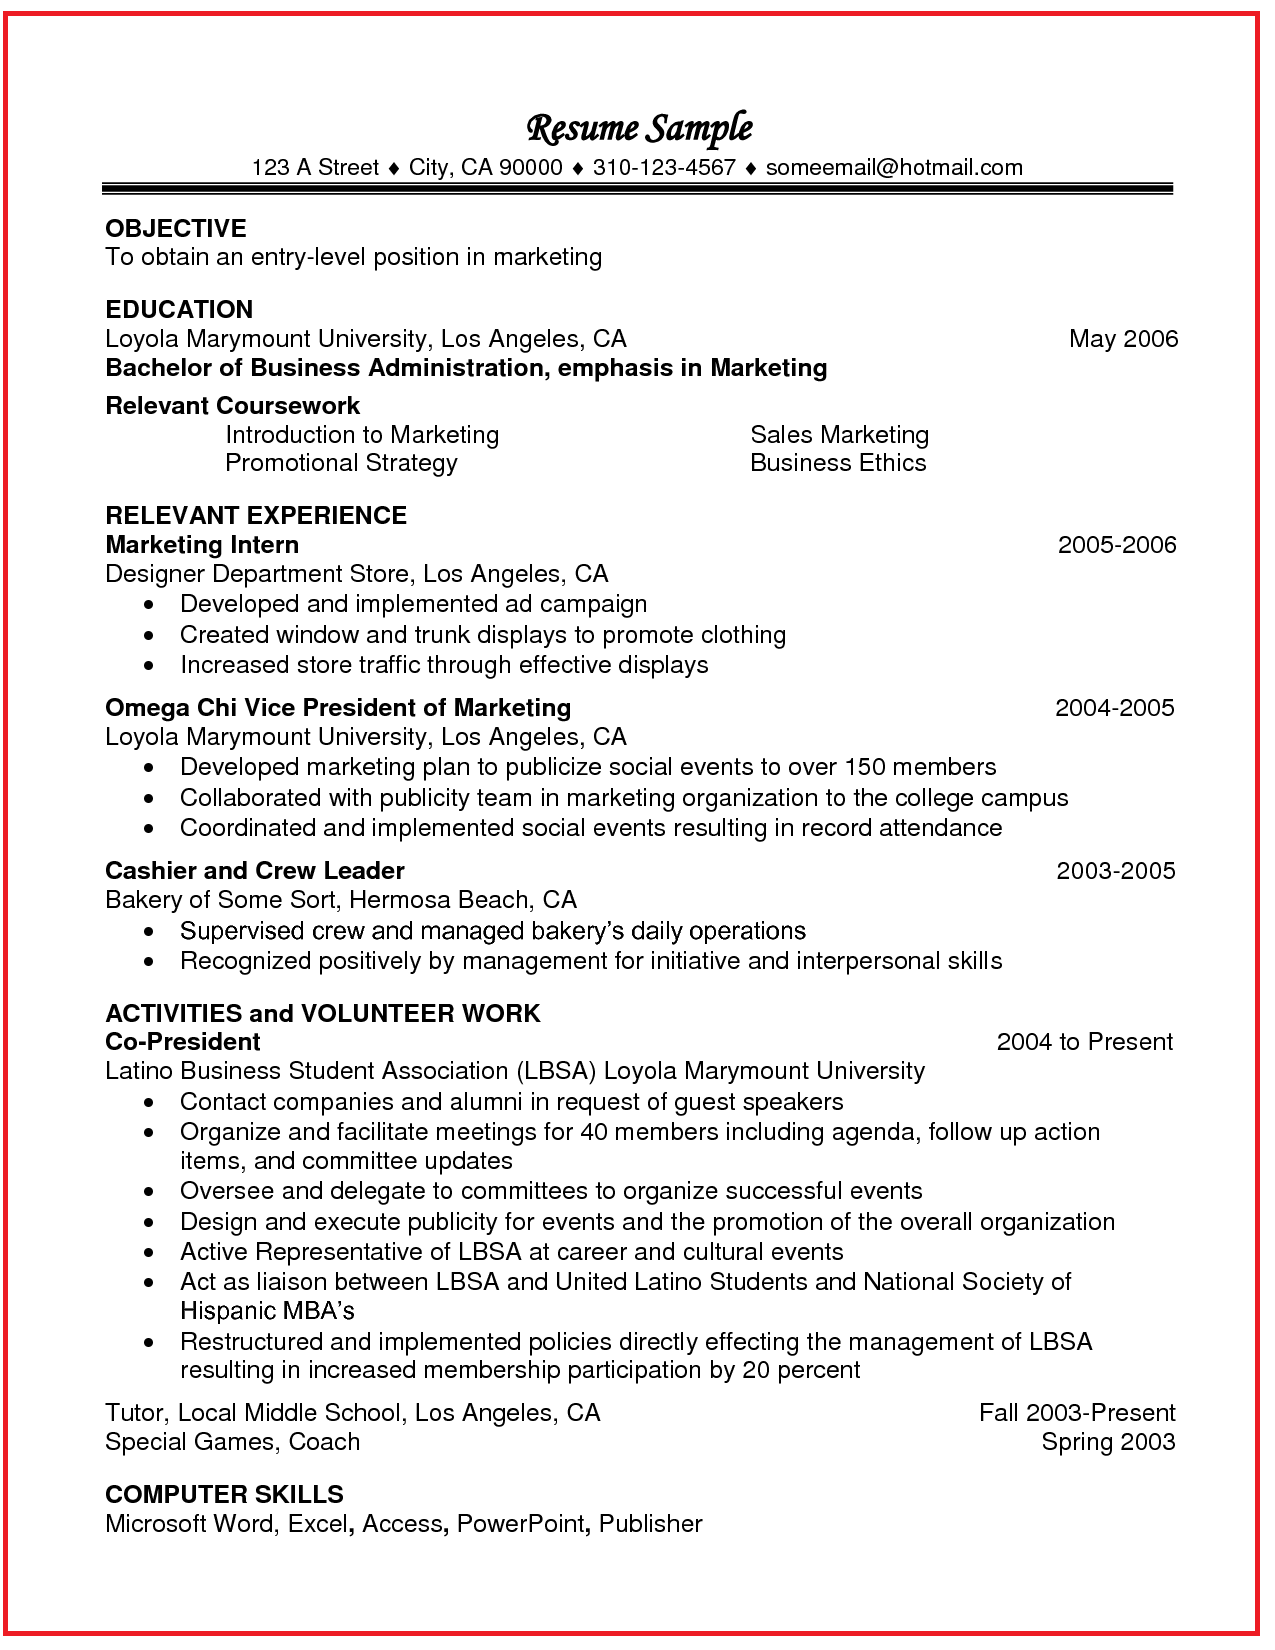 Journalism Resume Relevant Coursework In Resume Example  Httpwwwjobresume